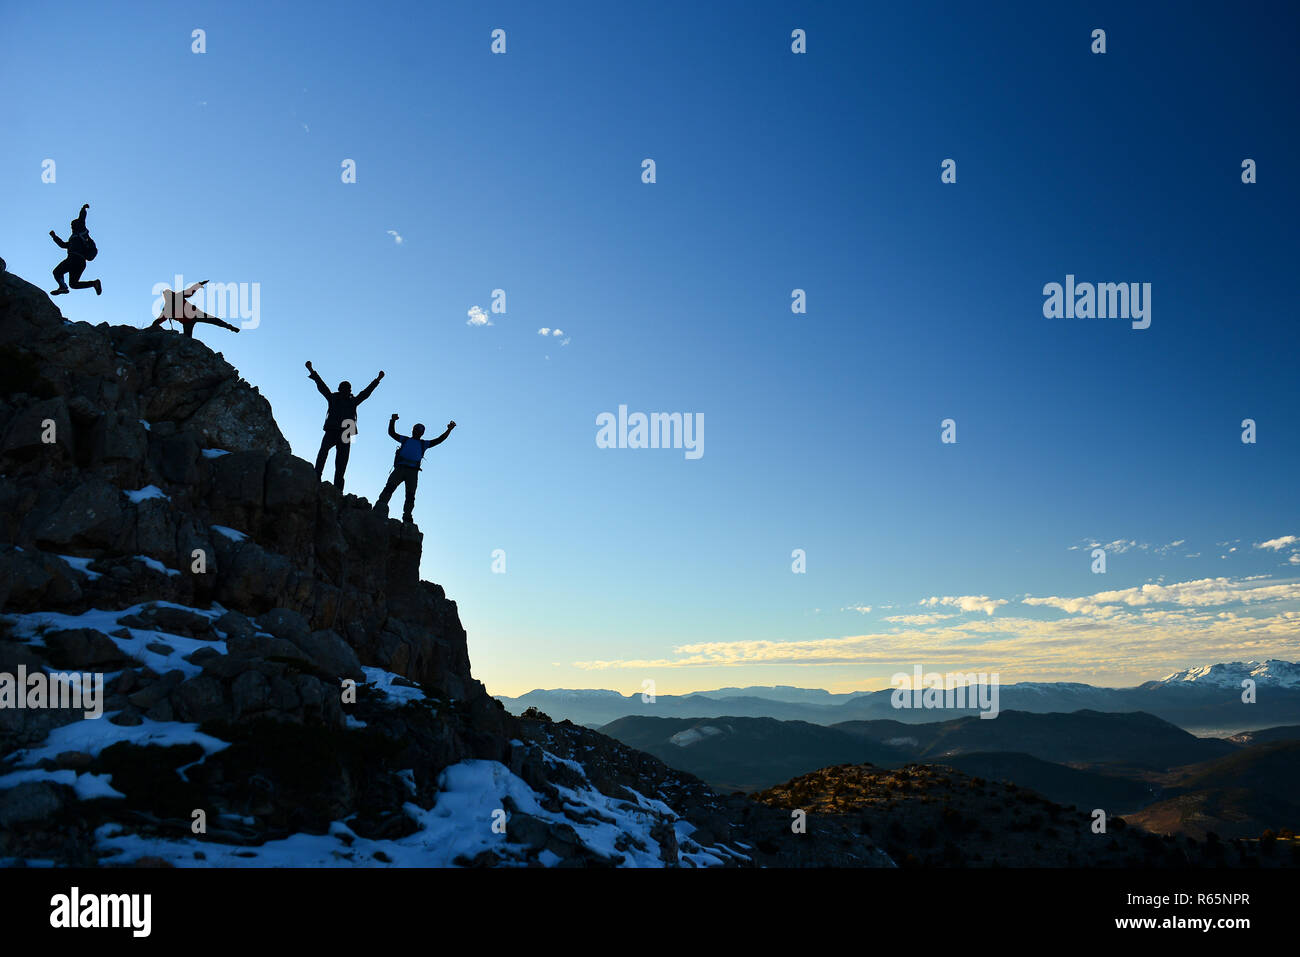 planned,stable,consistent and goal-oriented people - Stock Image